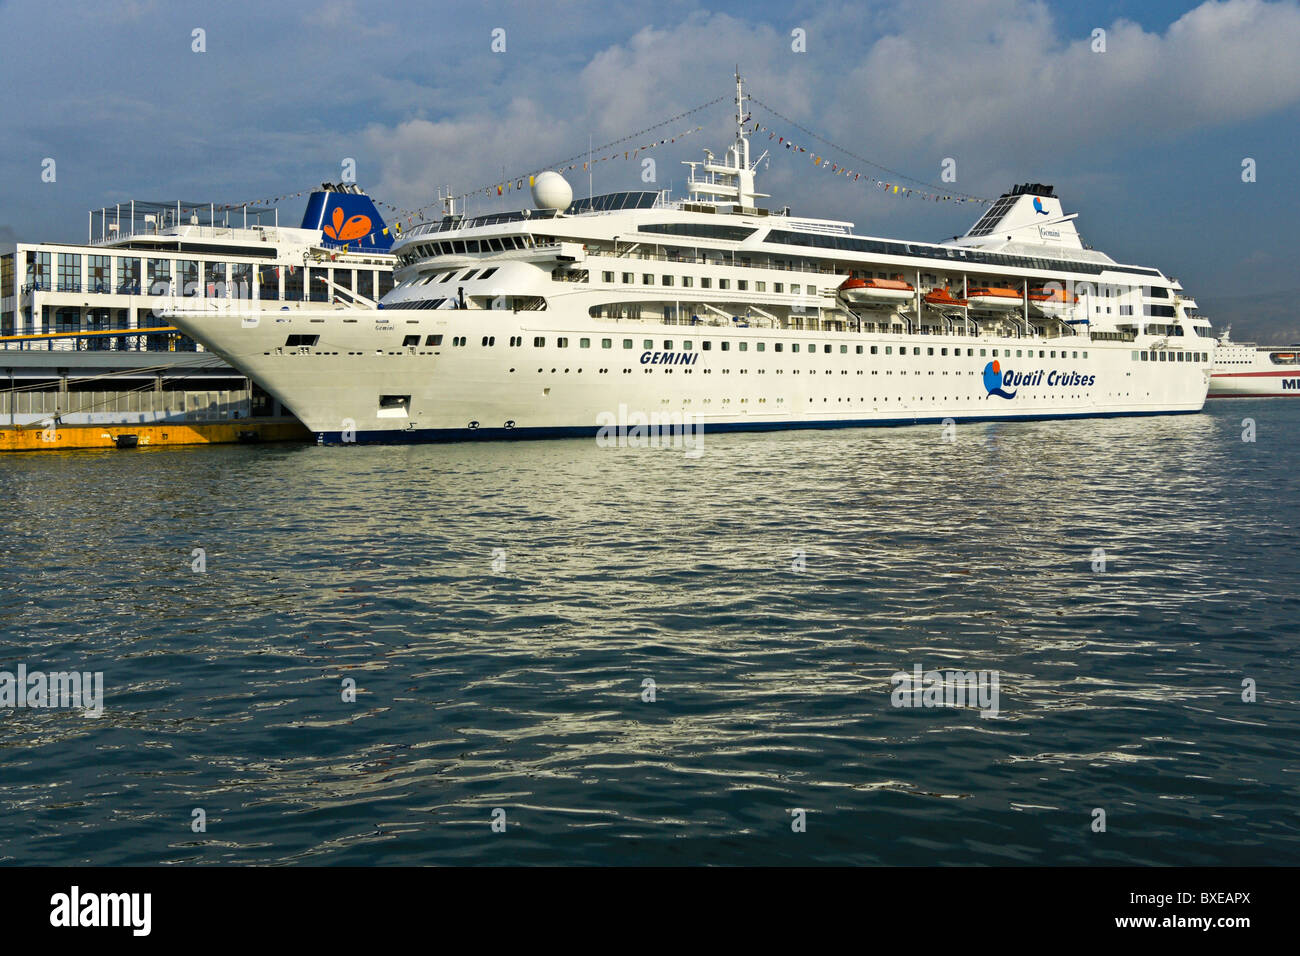 Quail Cruises cruise ship Gemini berthed at terminal in Piraeus Harbour Greece - Stock Image